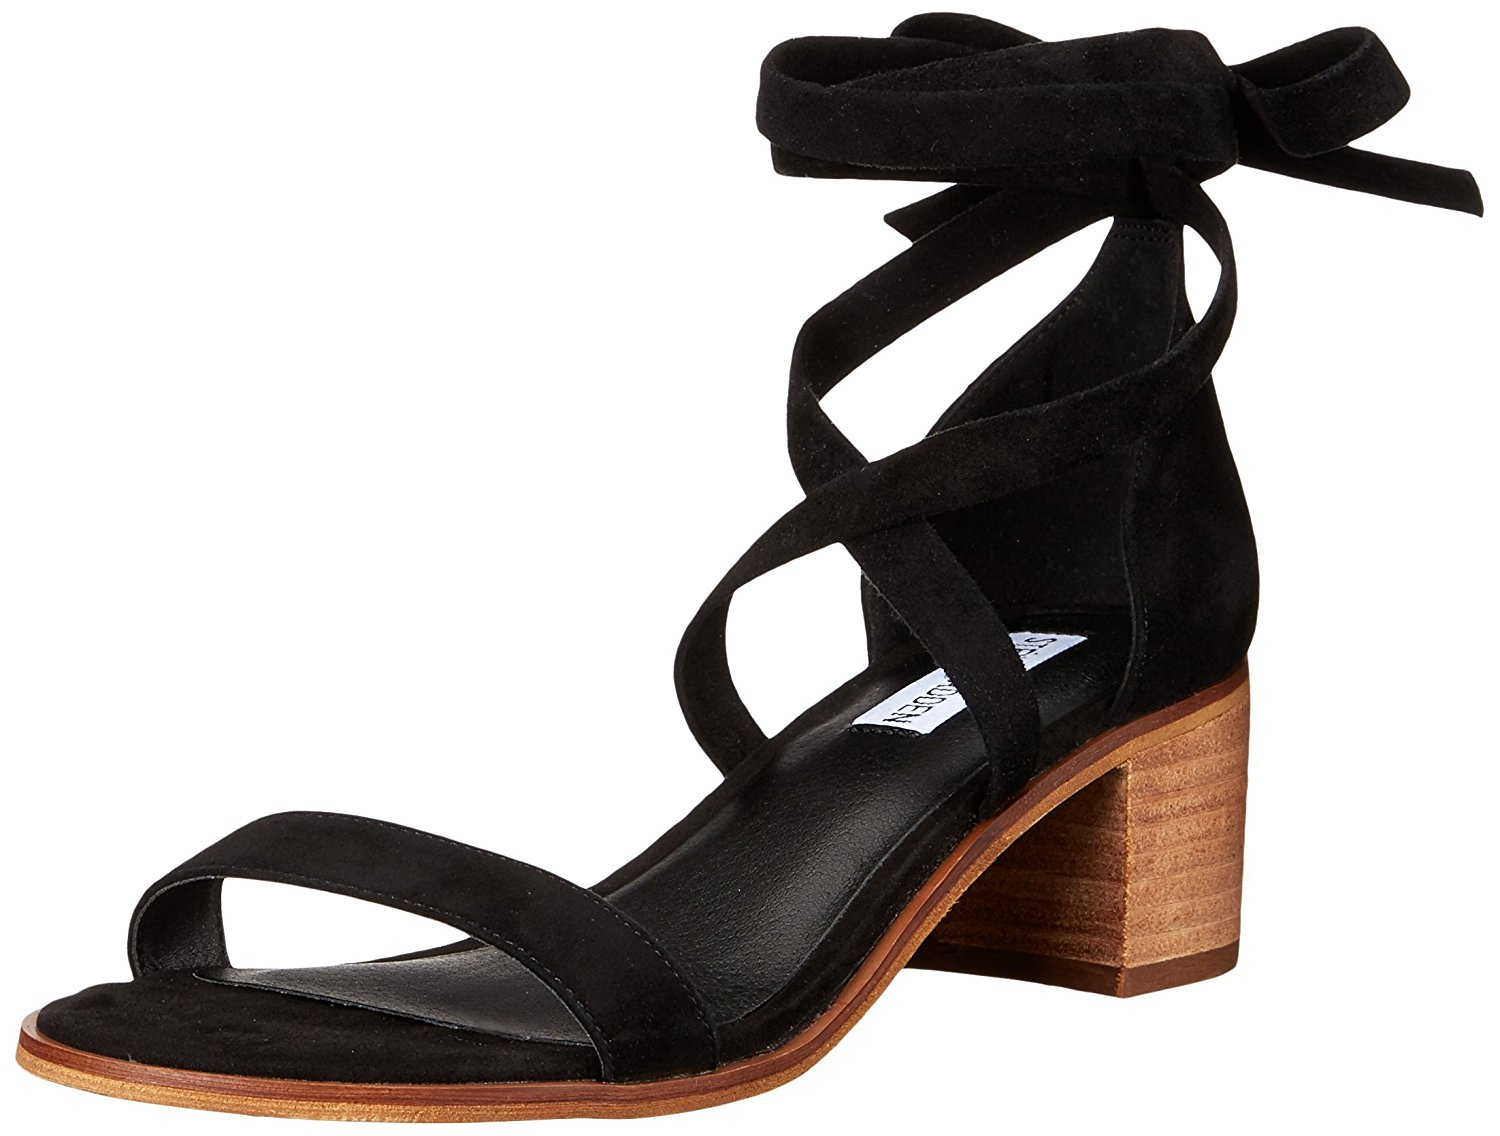 ccd87454017 Steve Madden Womens Rizzaa Leather Open Toe Ankle Wrap